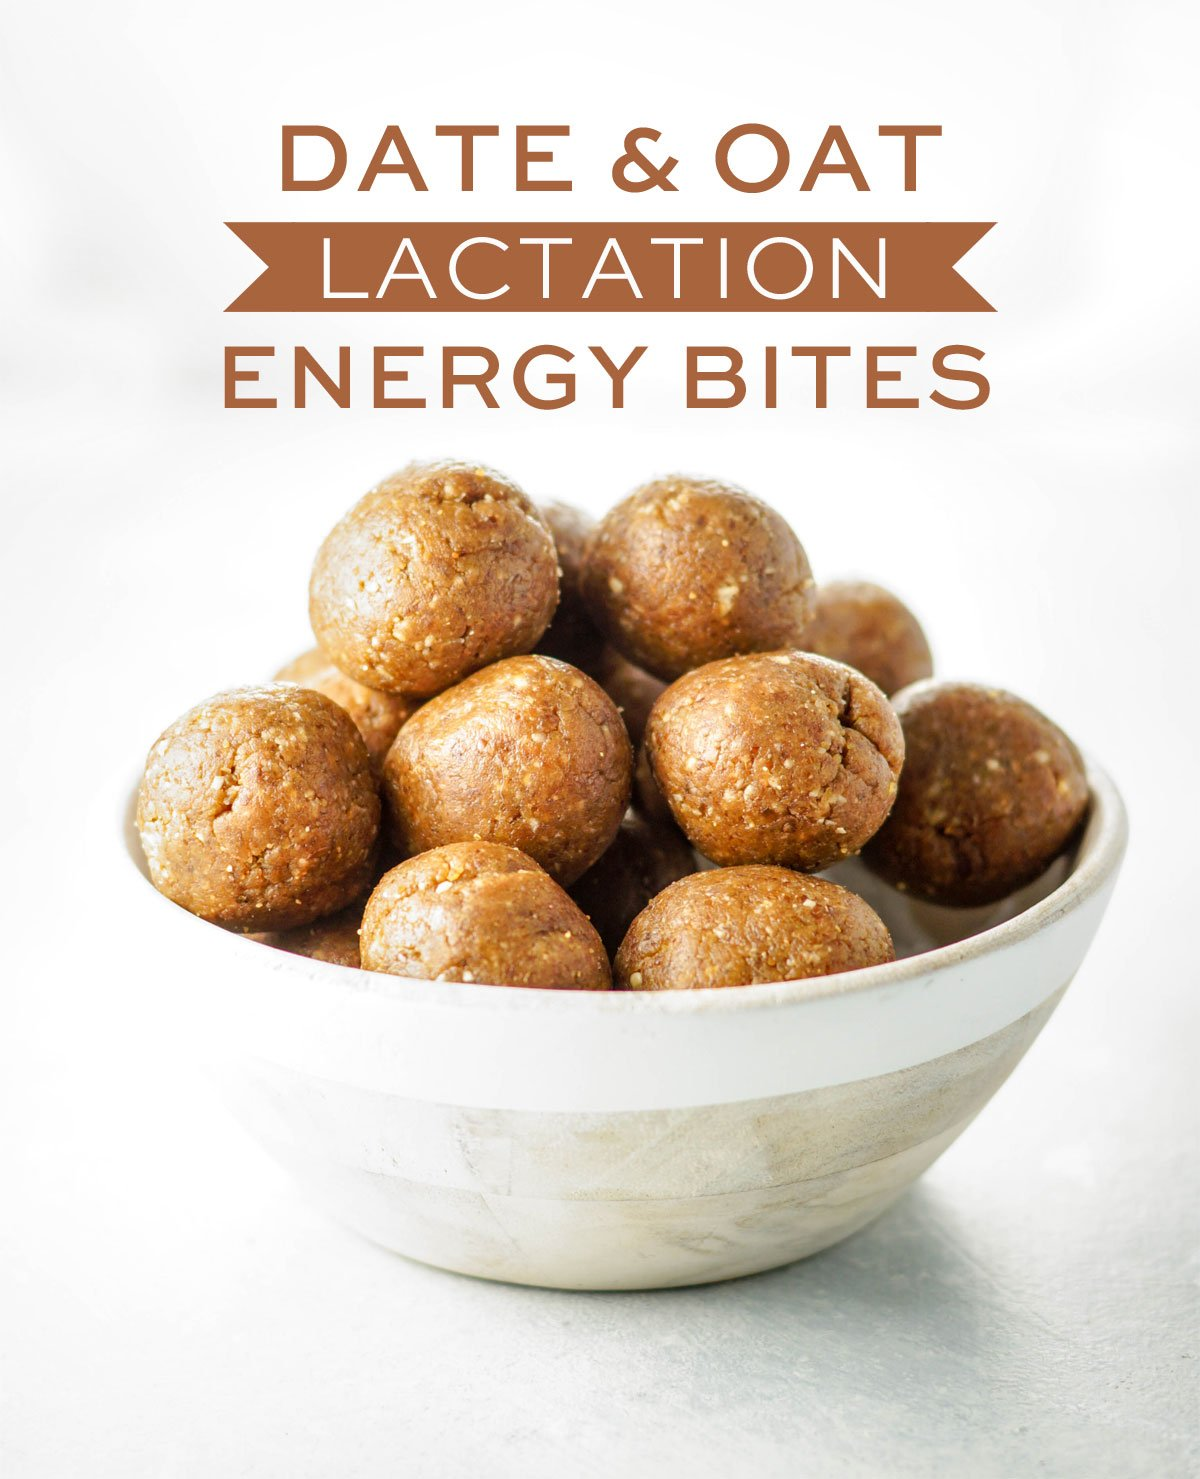 bowl of date and oat lactation energy bites